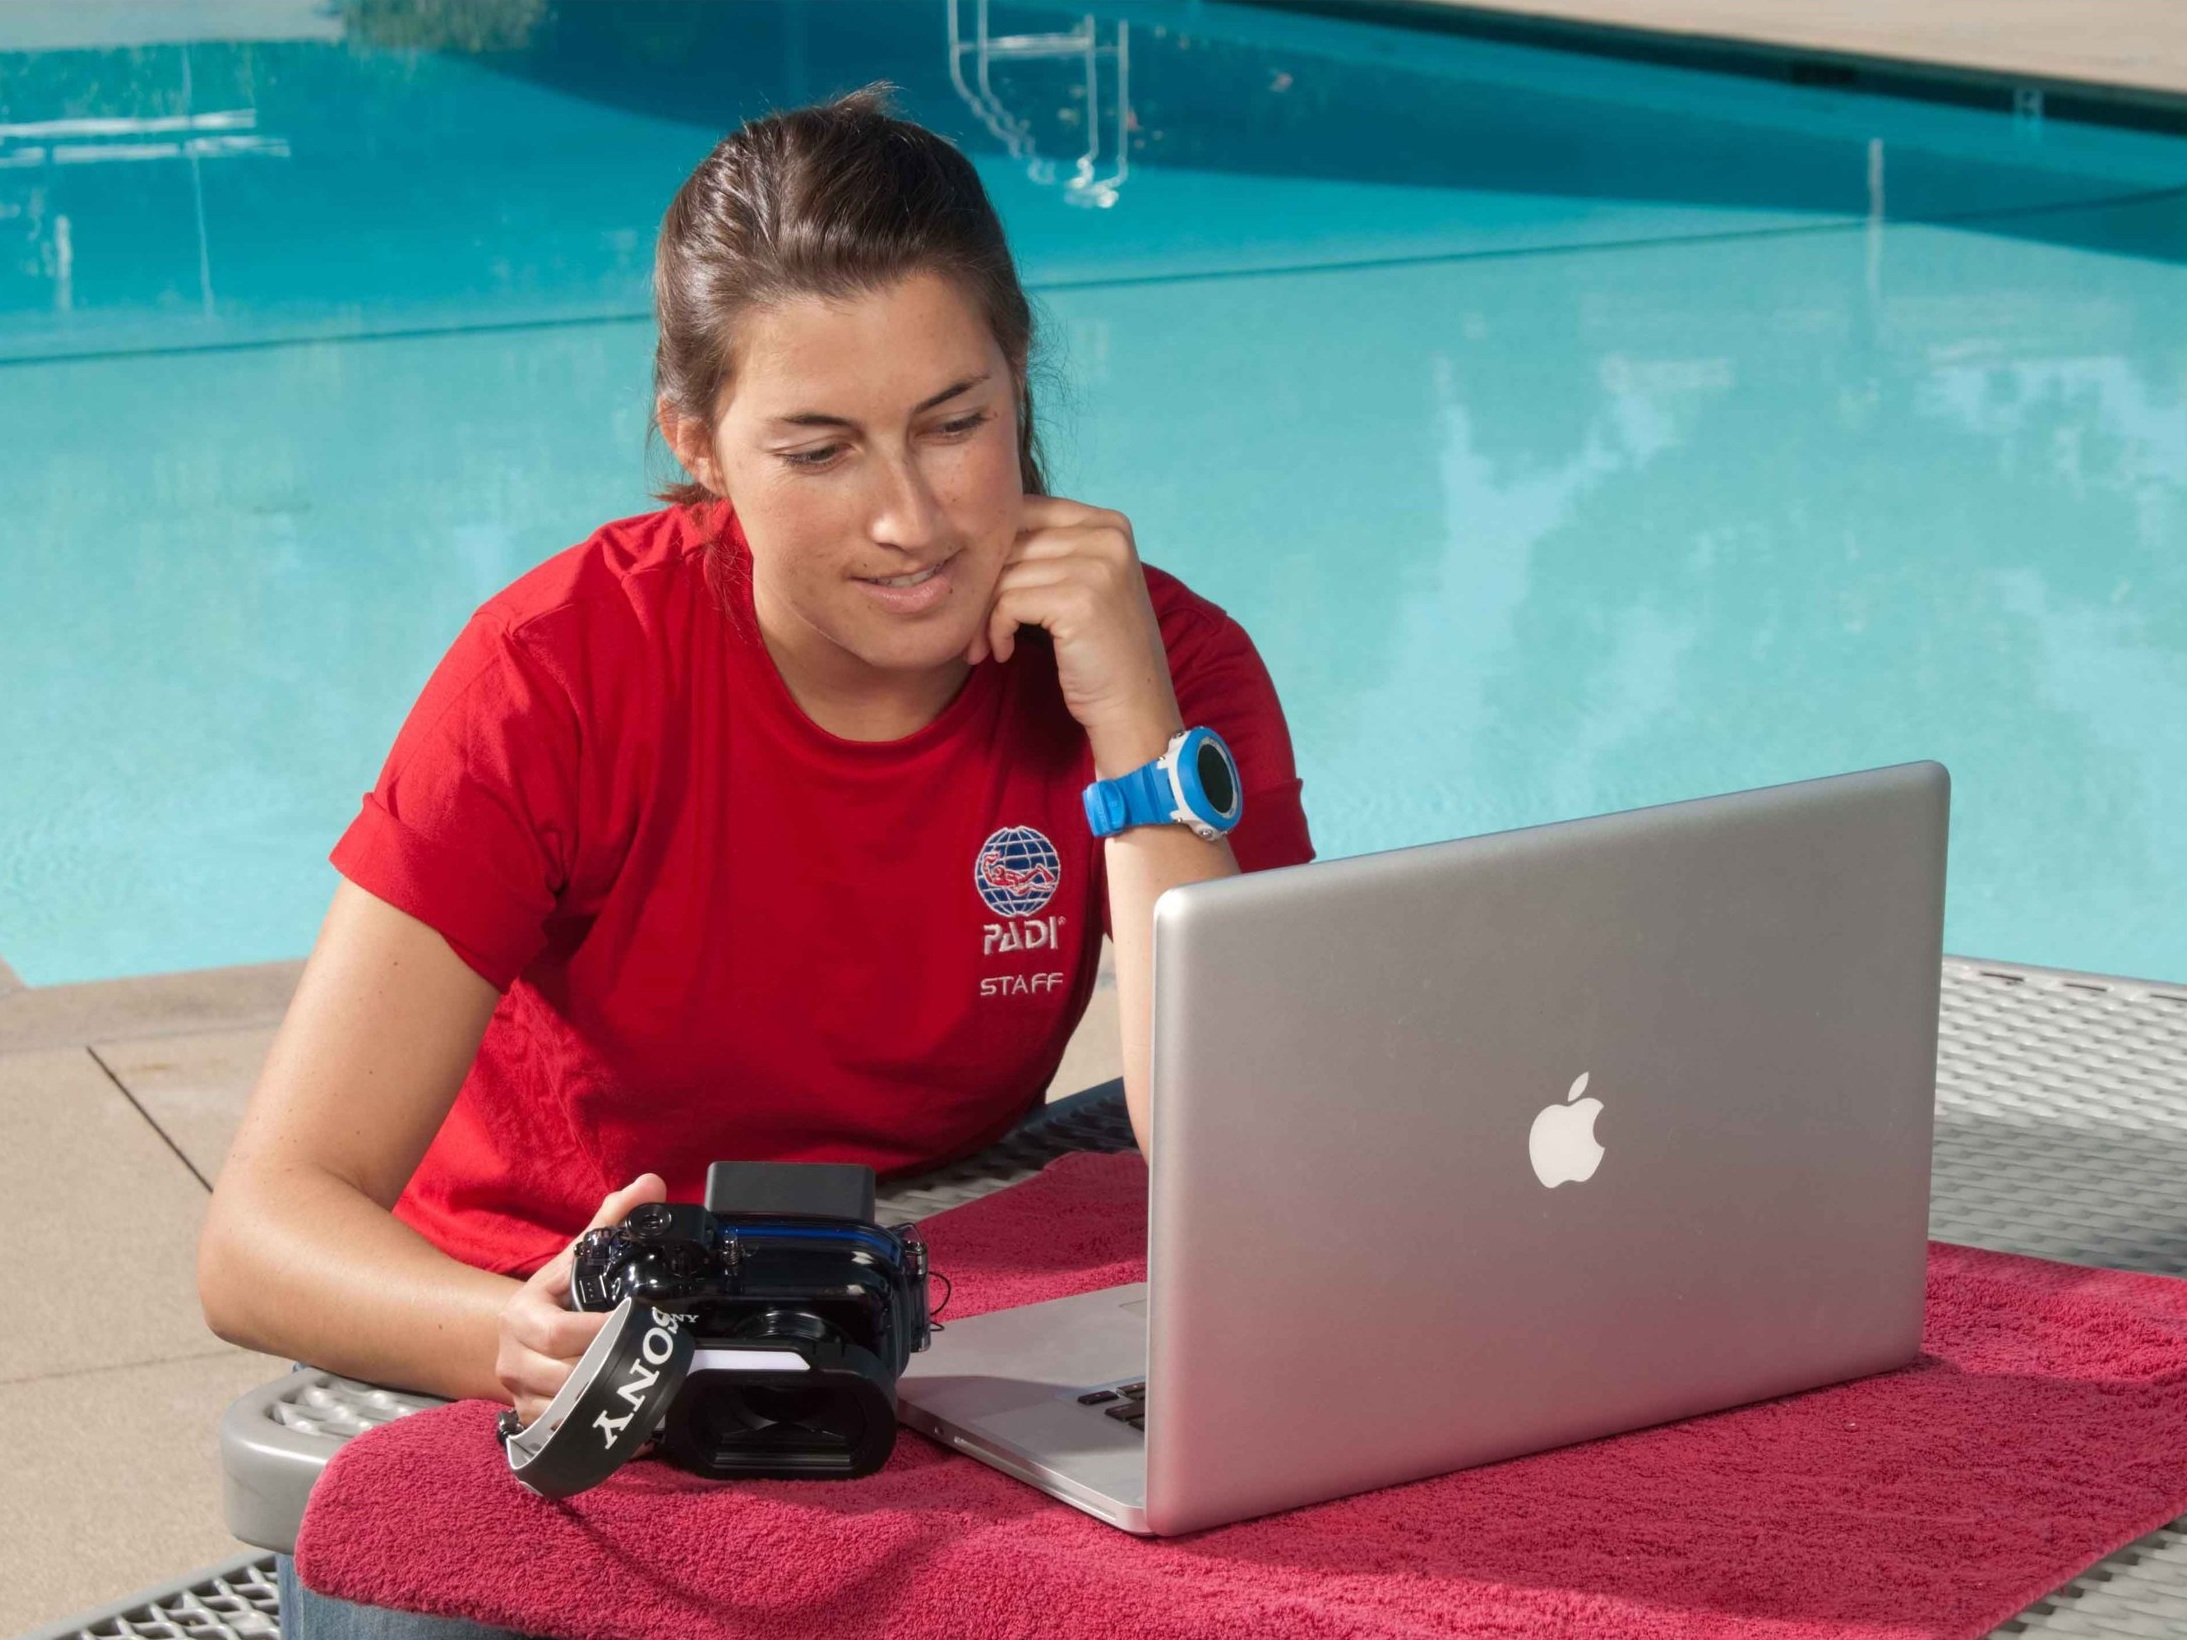 Step 1 - E-Learning Knowledge Development - TO help Develop your scuba knowledge and teach you about new exciting areas of scuba diving